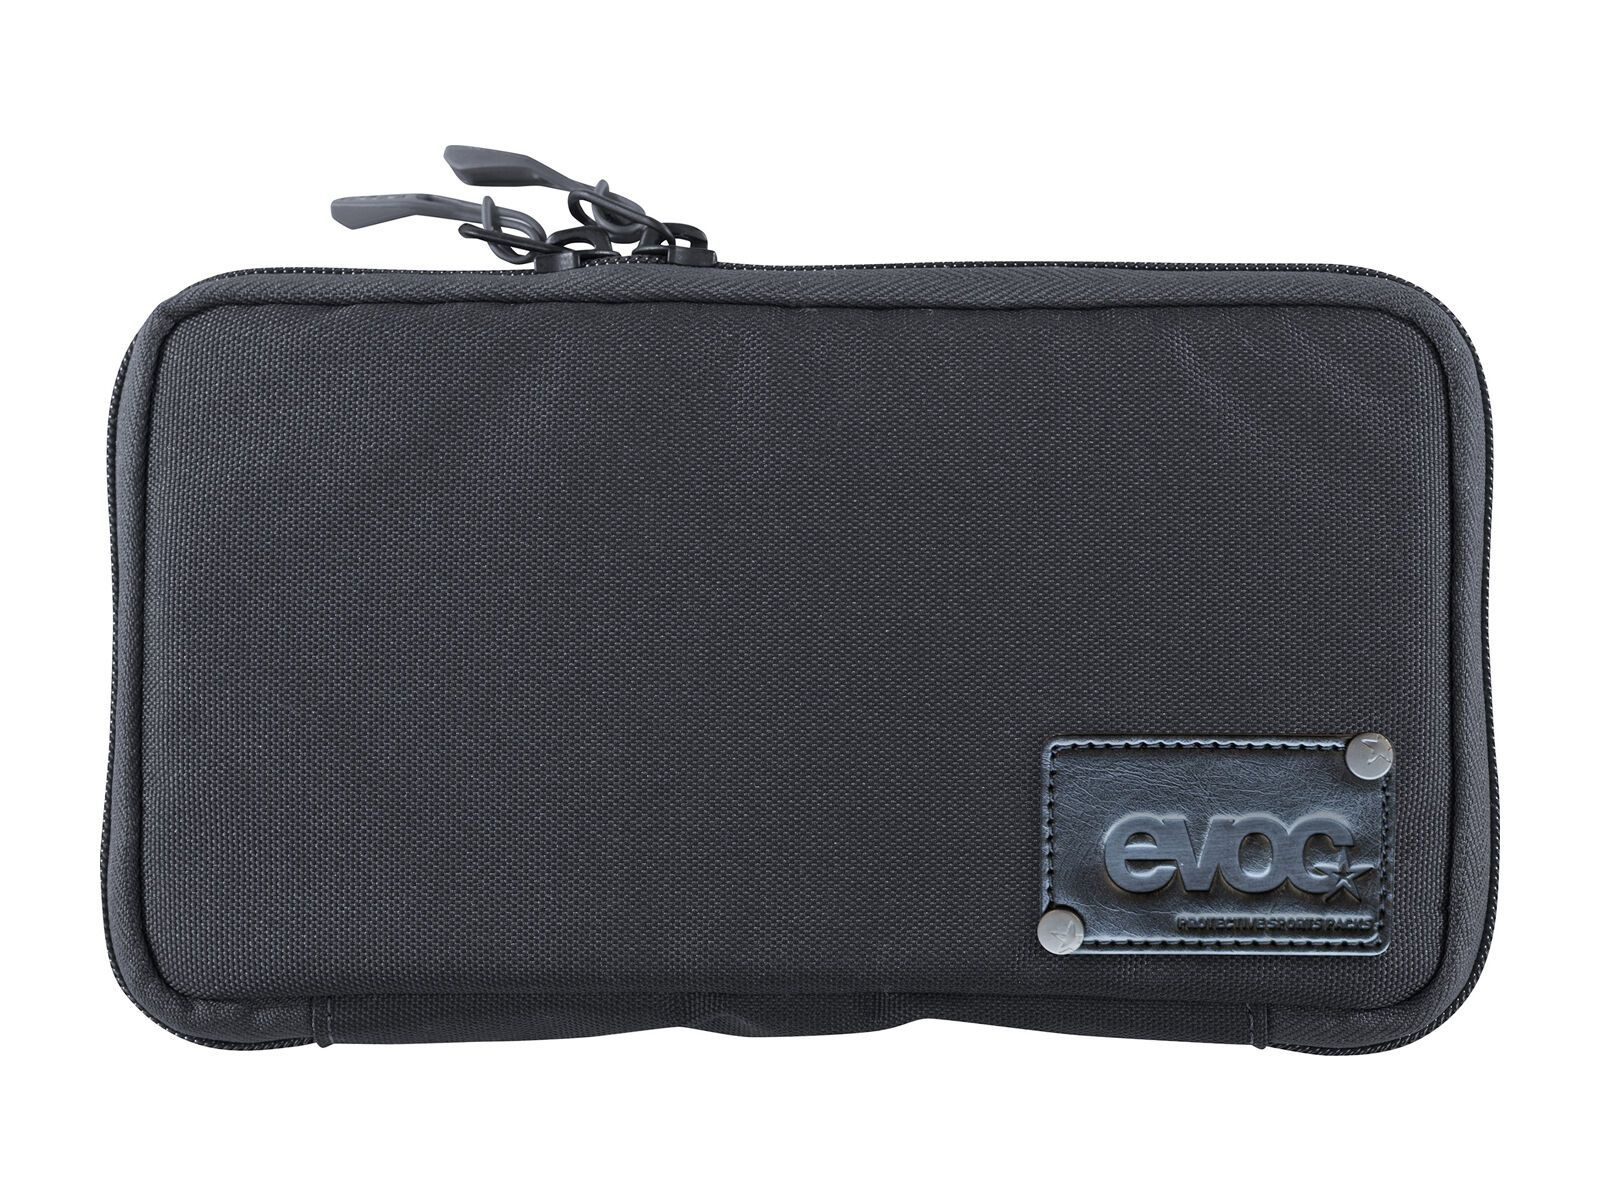 Evoc Travel Case, black - Wertsachentasche 450717737